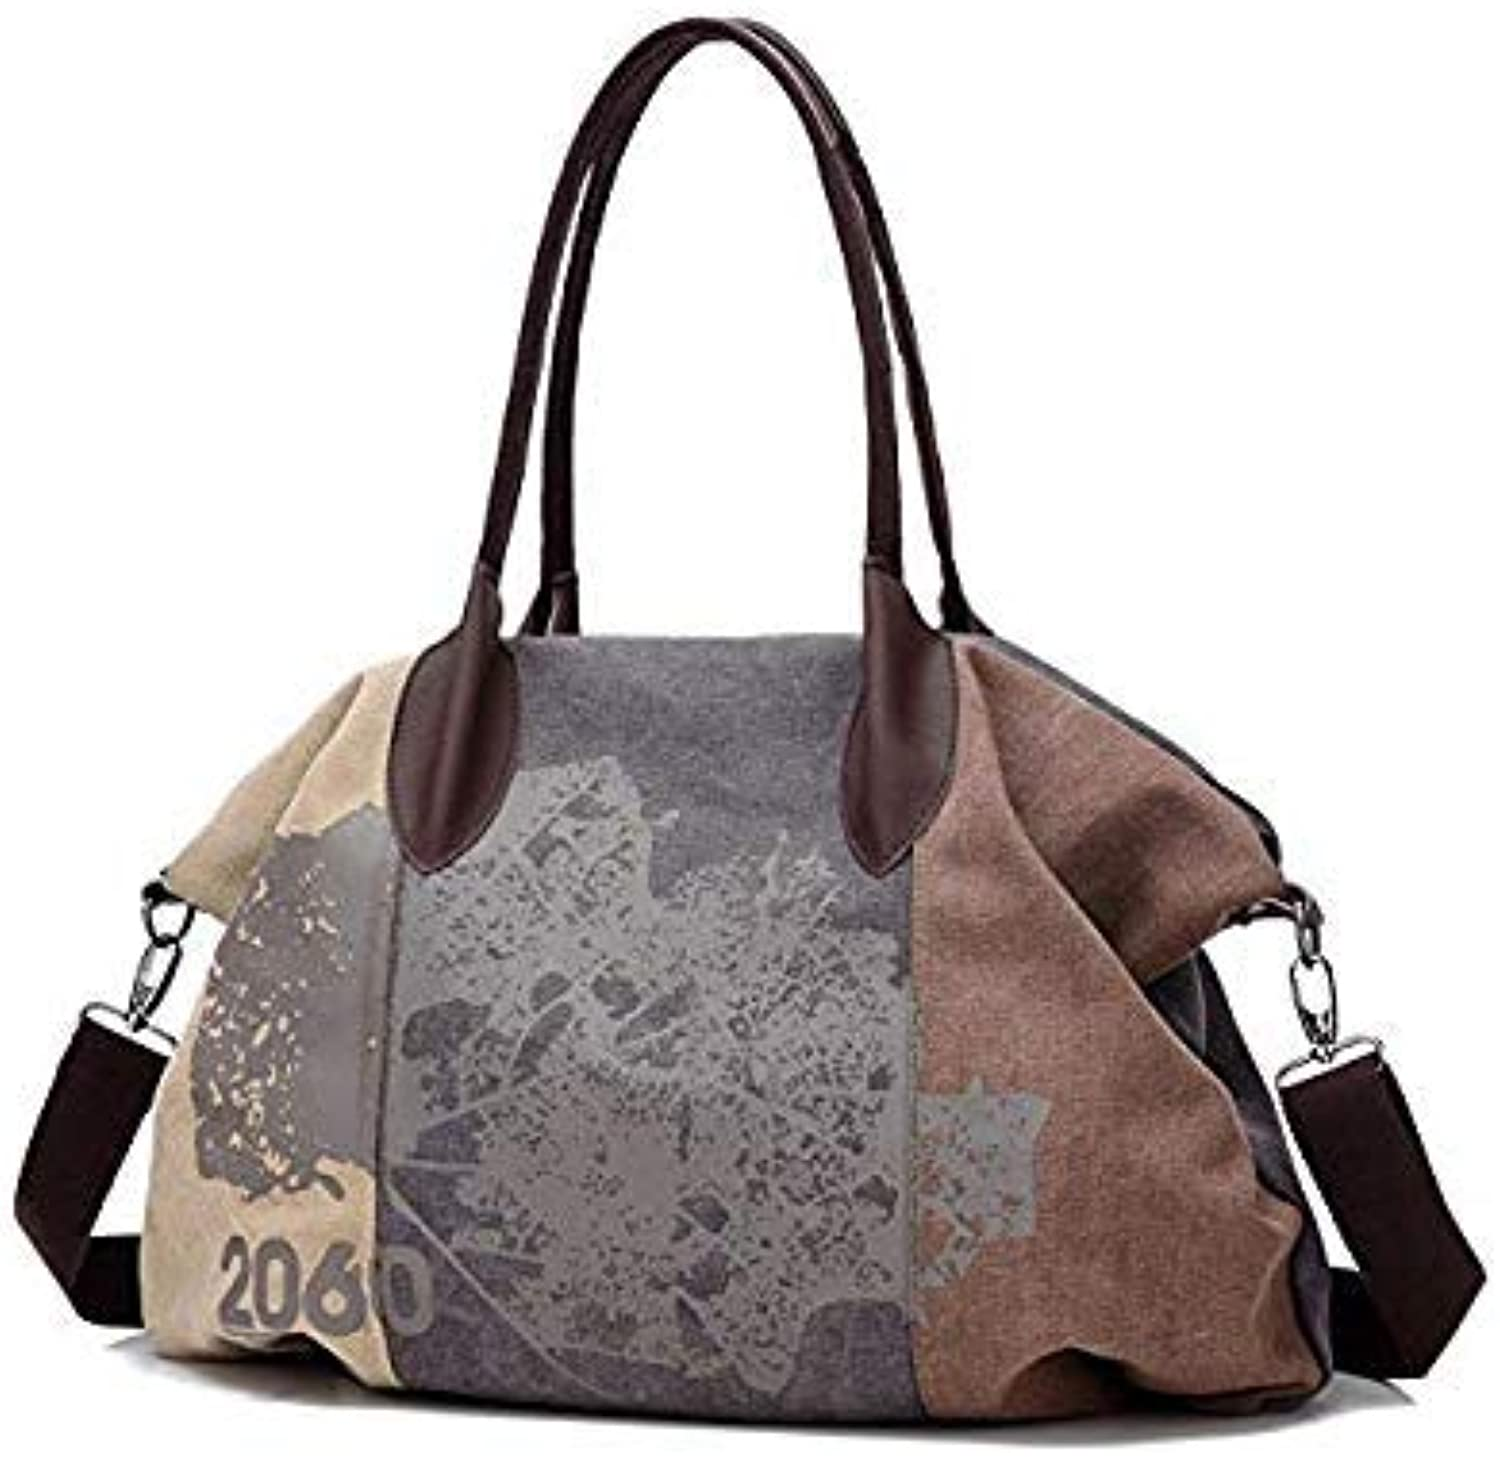 Bloomerang Women Canvas Bag Large Capacity Ladies Shoulder Bag Leisure Girls Handbag Rushed Crossbody Bags Brands Big Casual Tote Bolsa color Coffee